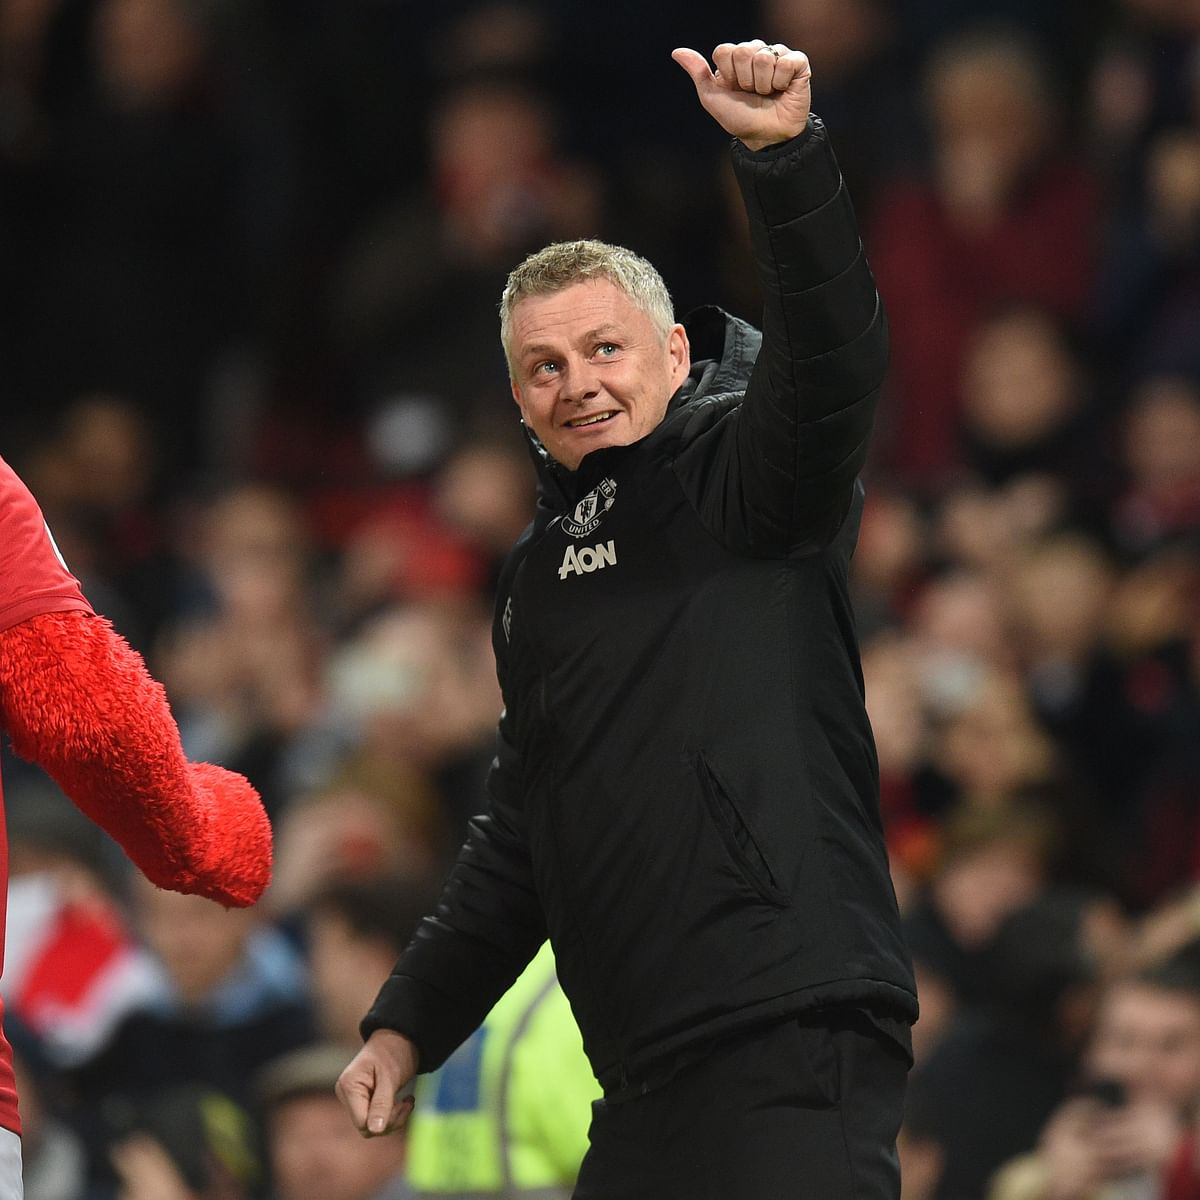 Ole Solskjaer suggests Man Utd players' wives could help improve their finishing abilities amid lockdown